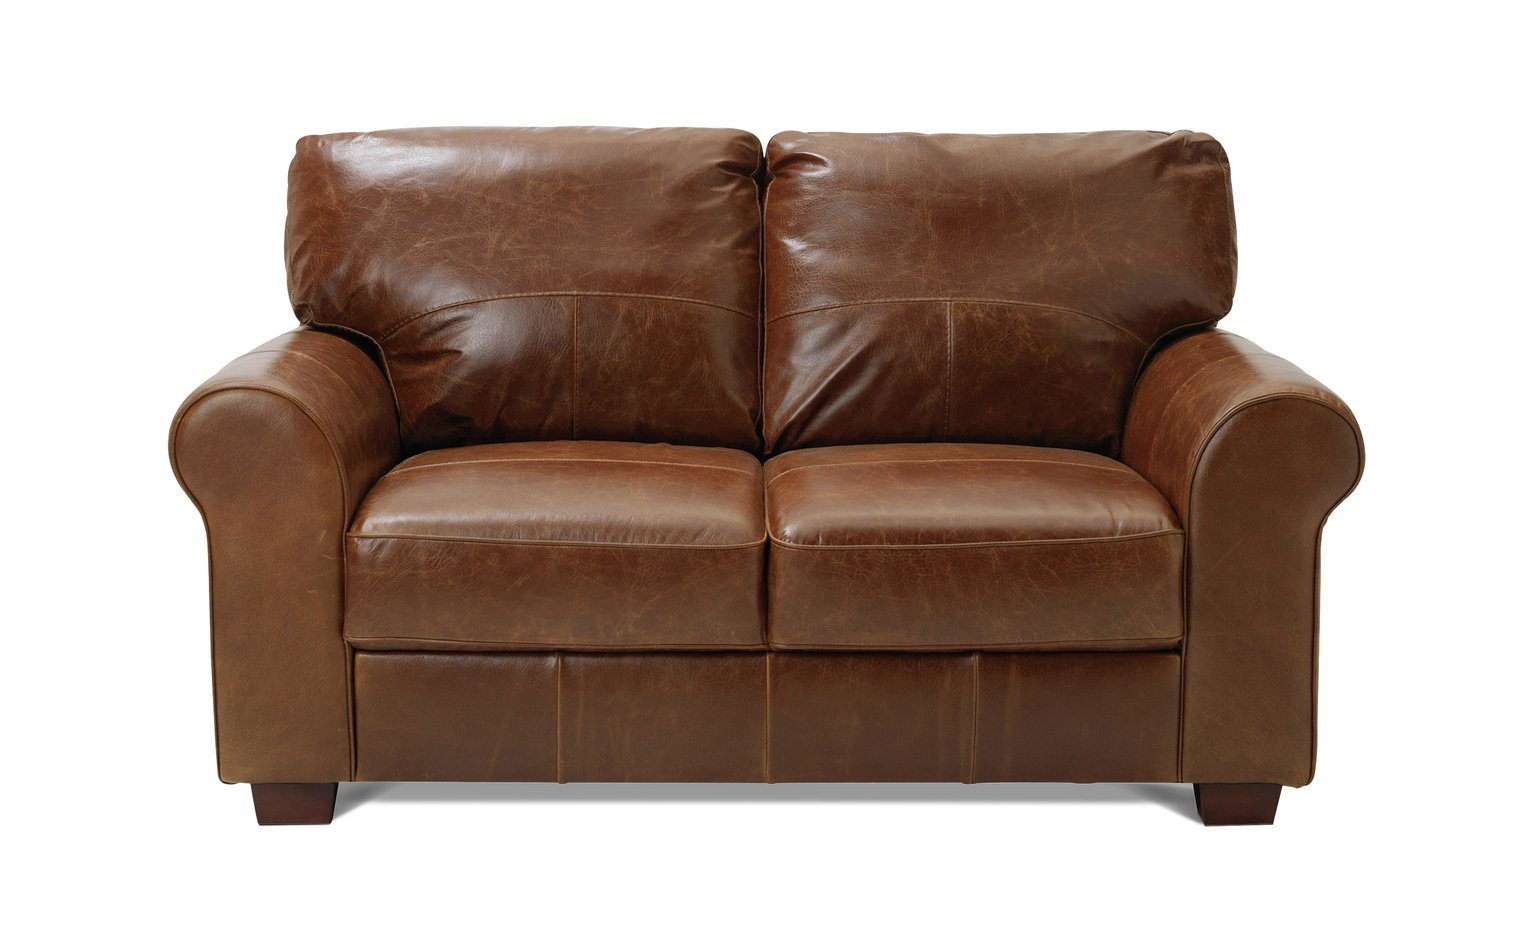 sofa preston docks bed for small condo results 2 seater argos home salisbury leather tan